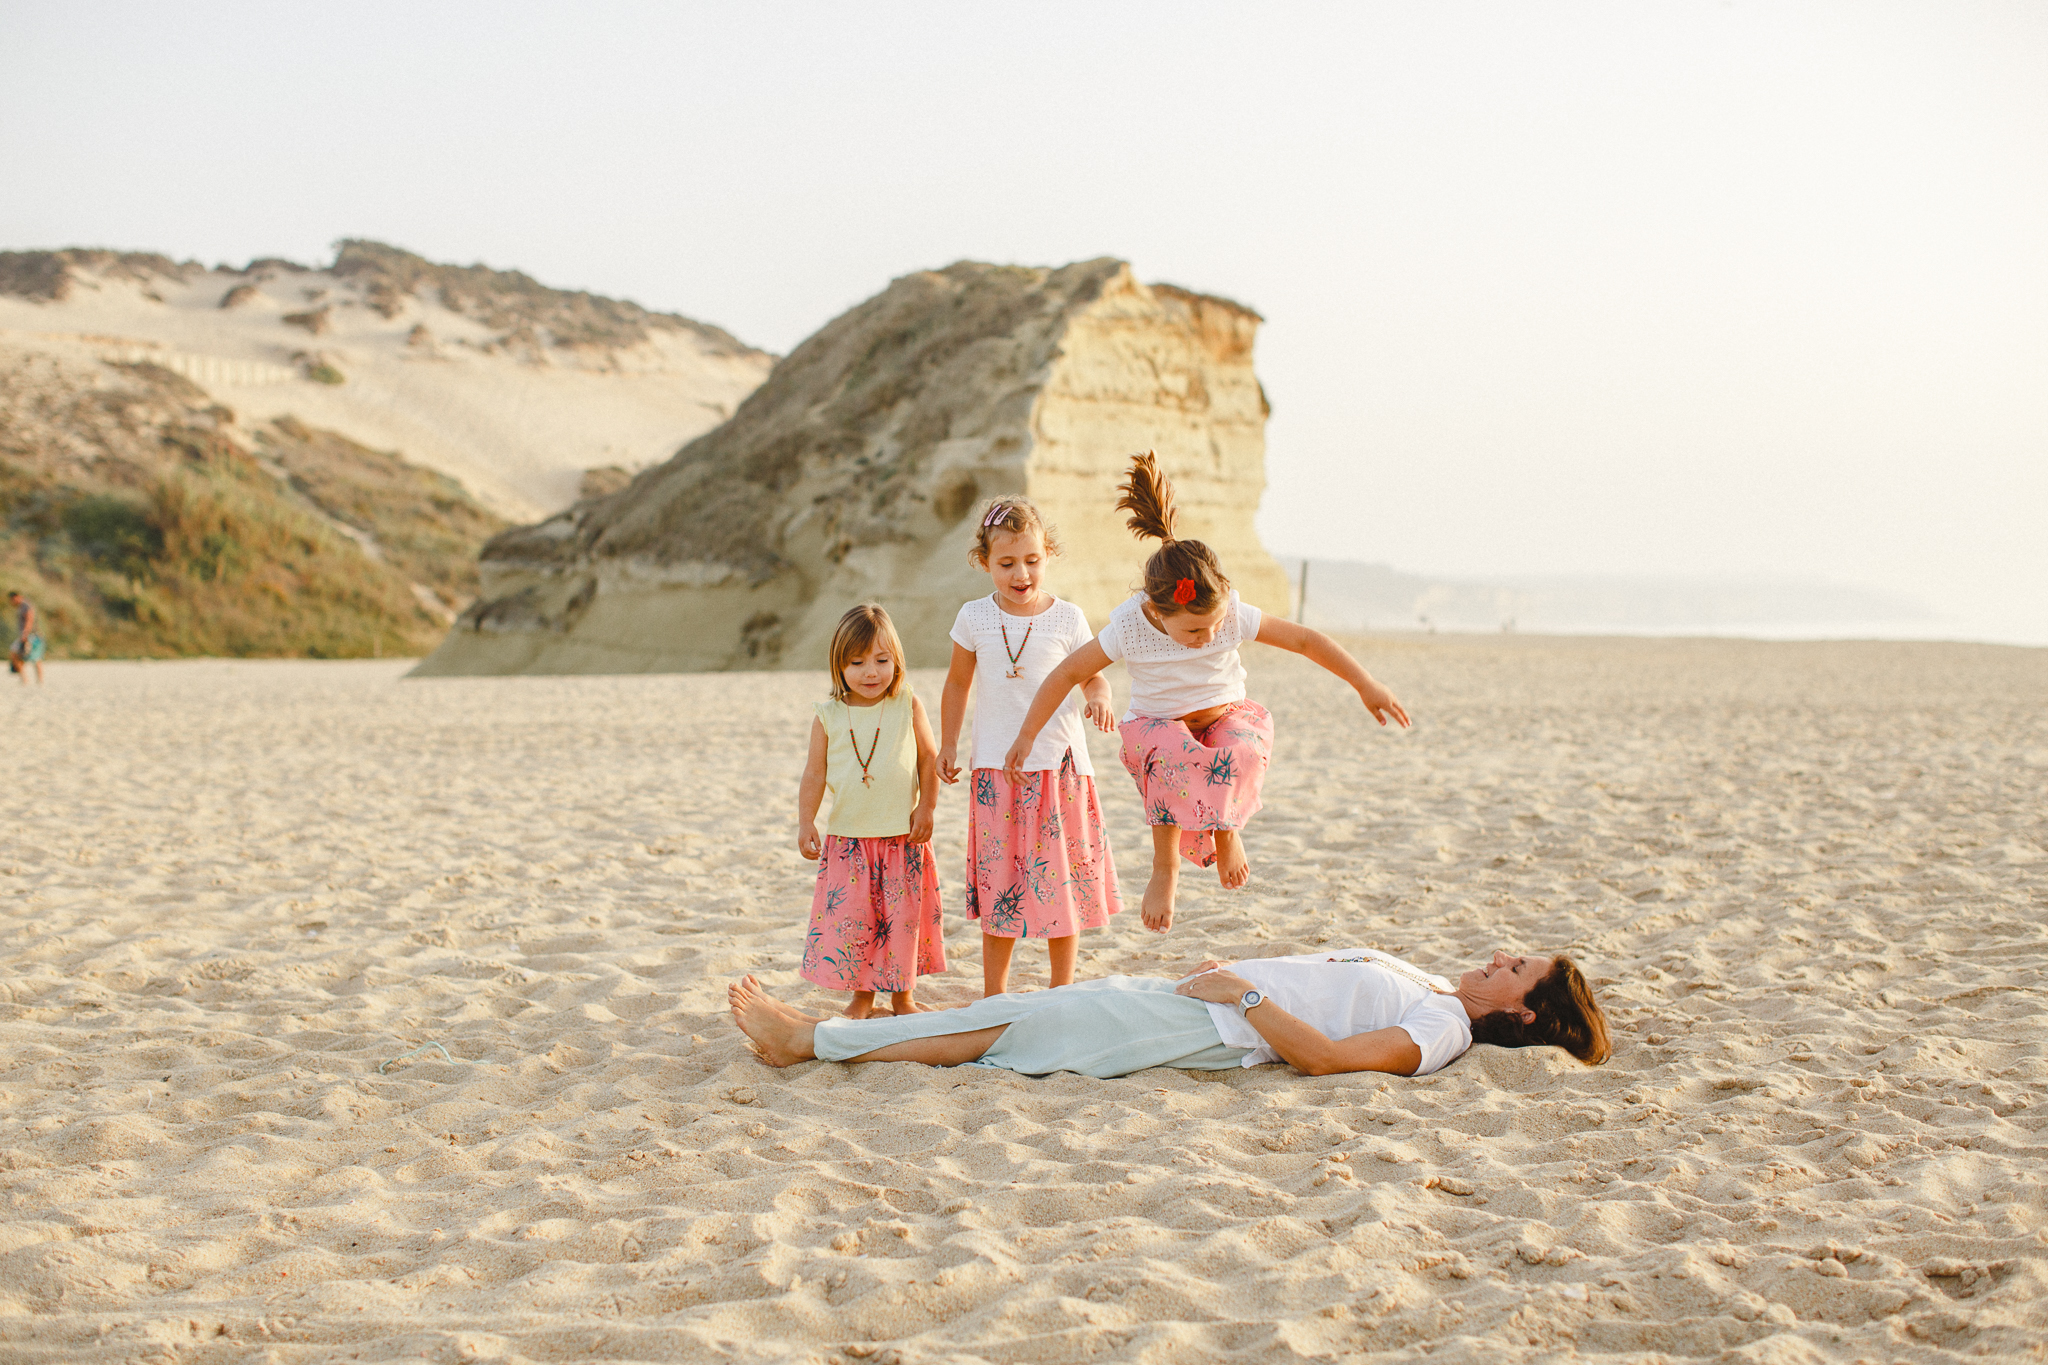 Sessão de Família na Praia, Beach Family Photo Shoot in Portugal by Hello Twiggs